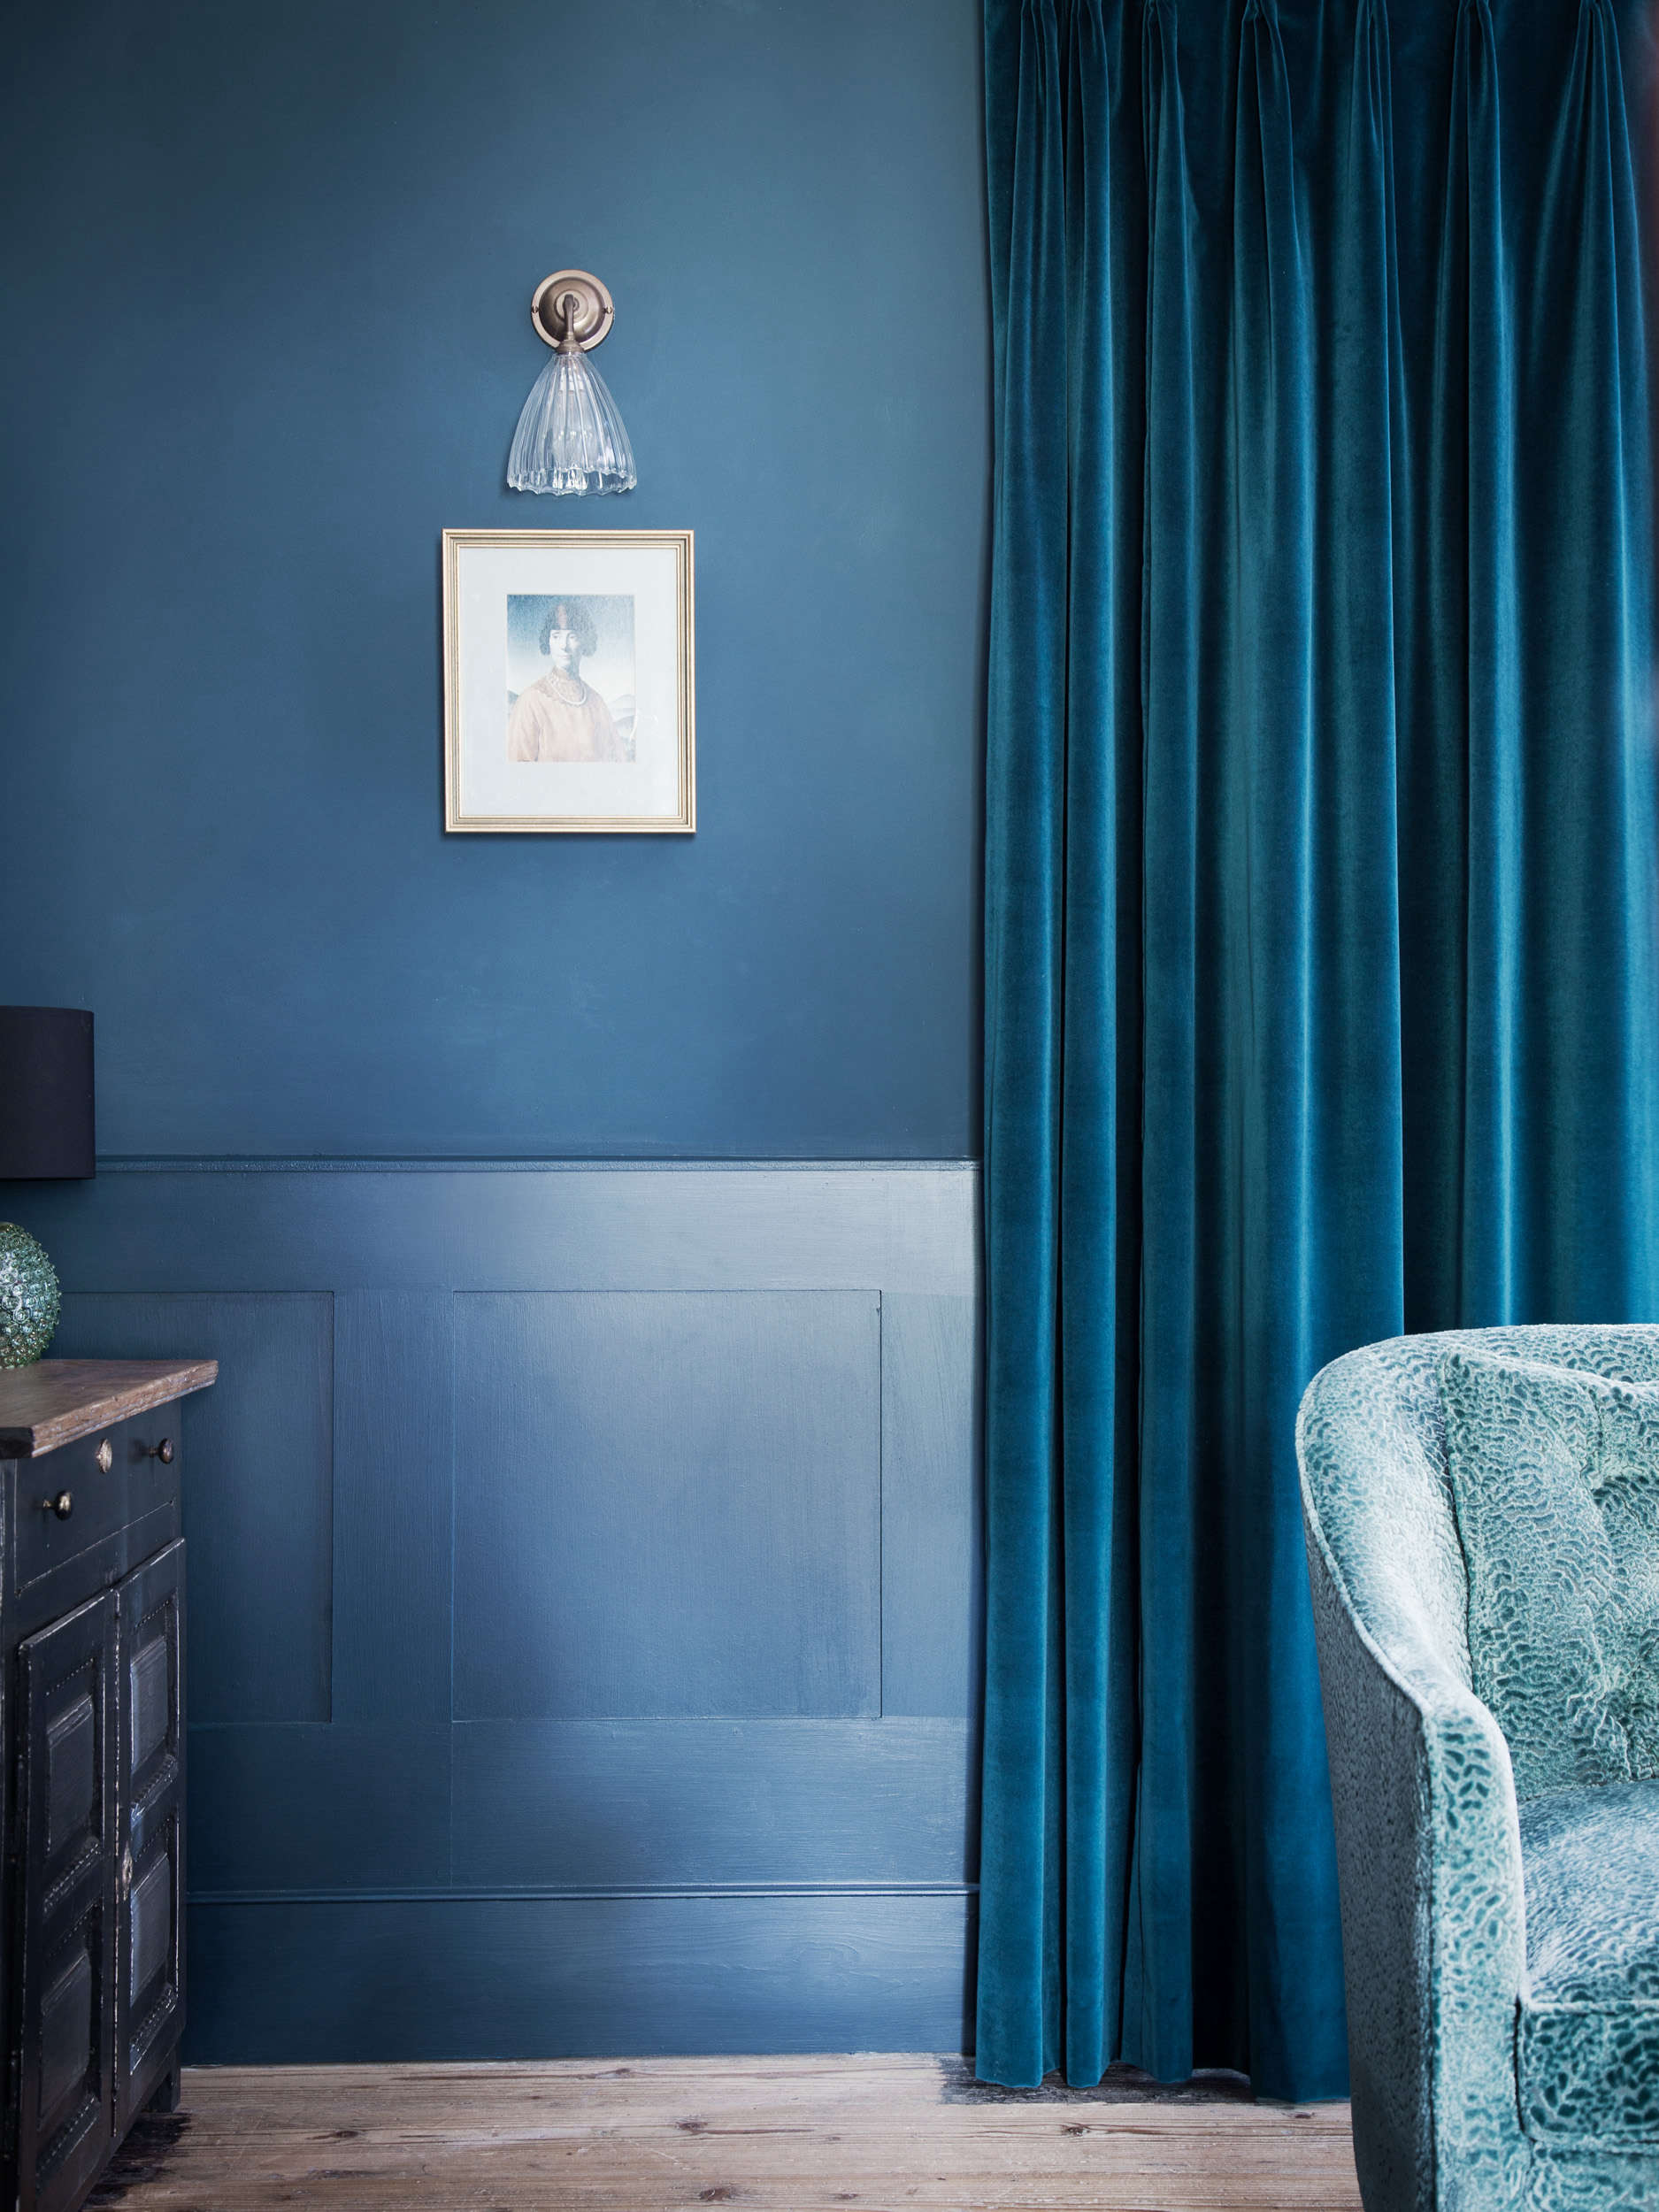 Blue Curtains in Blue Dorset House by Mark Lewis, Photo by Rory Gardiner